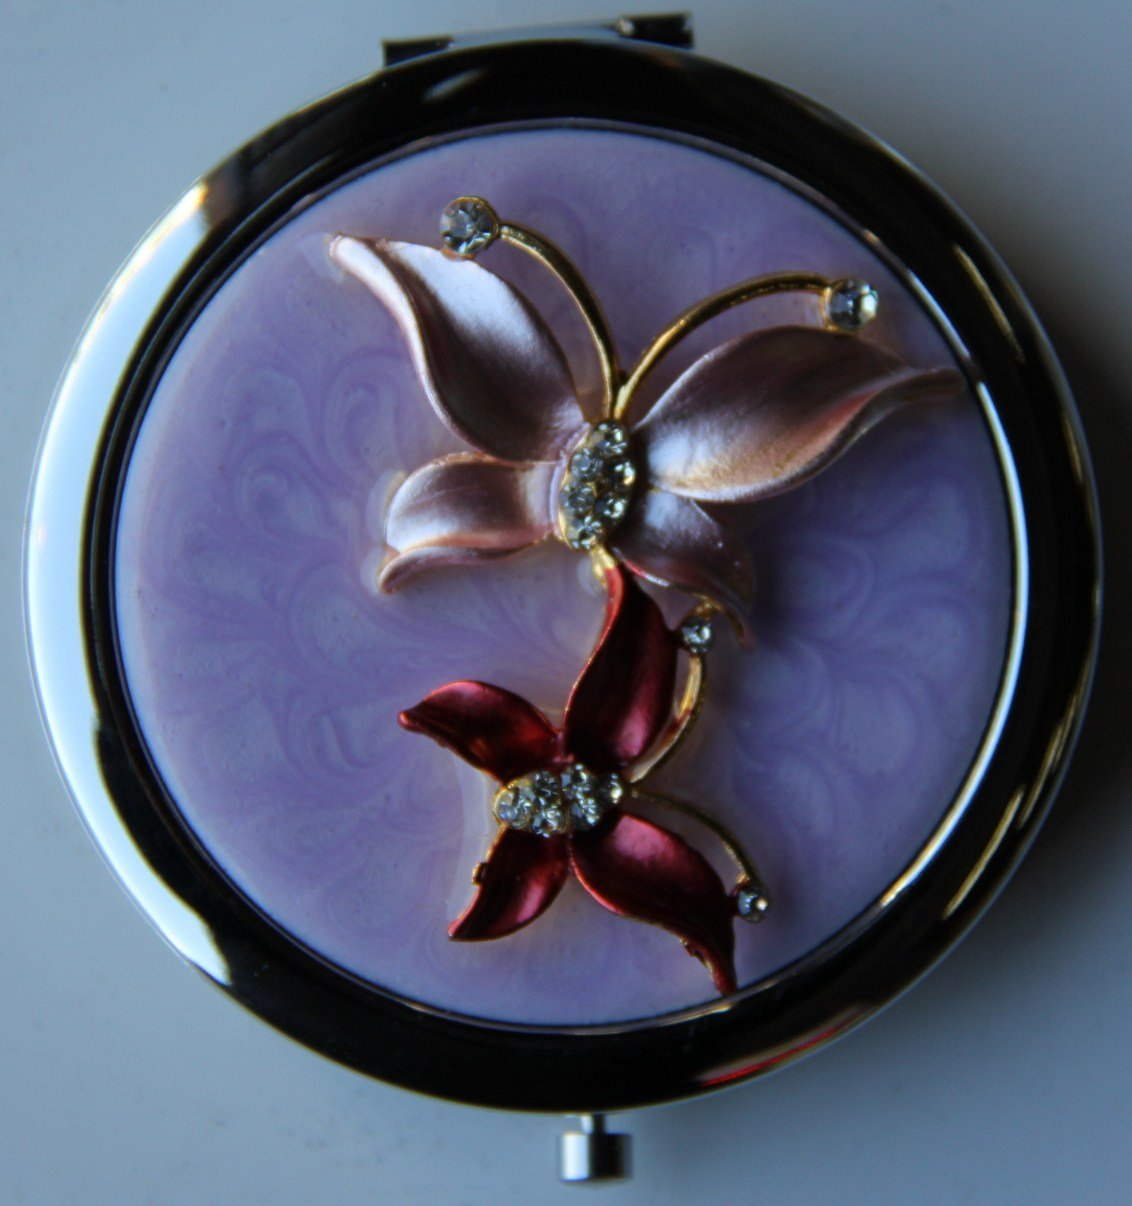 Purse Handbag Double Compact Cosmetic Mirror – Two Jeweled Butterflies